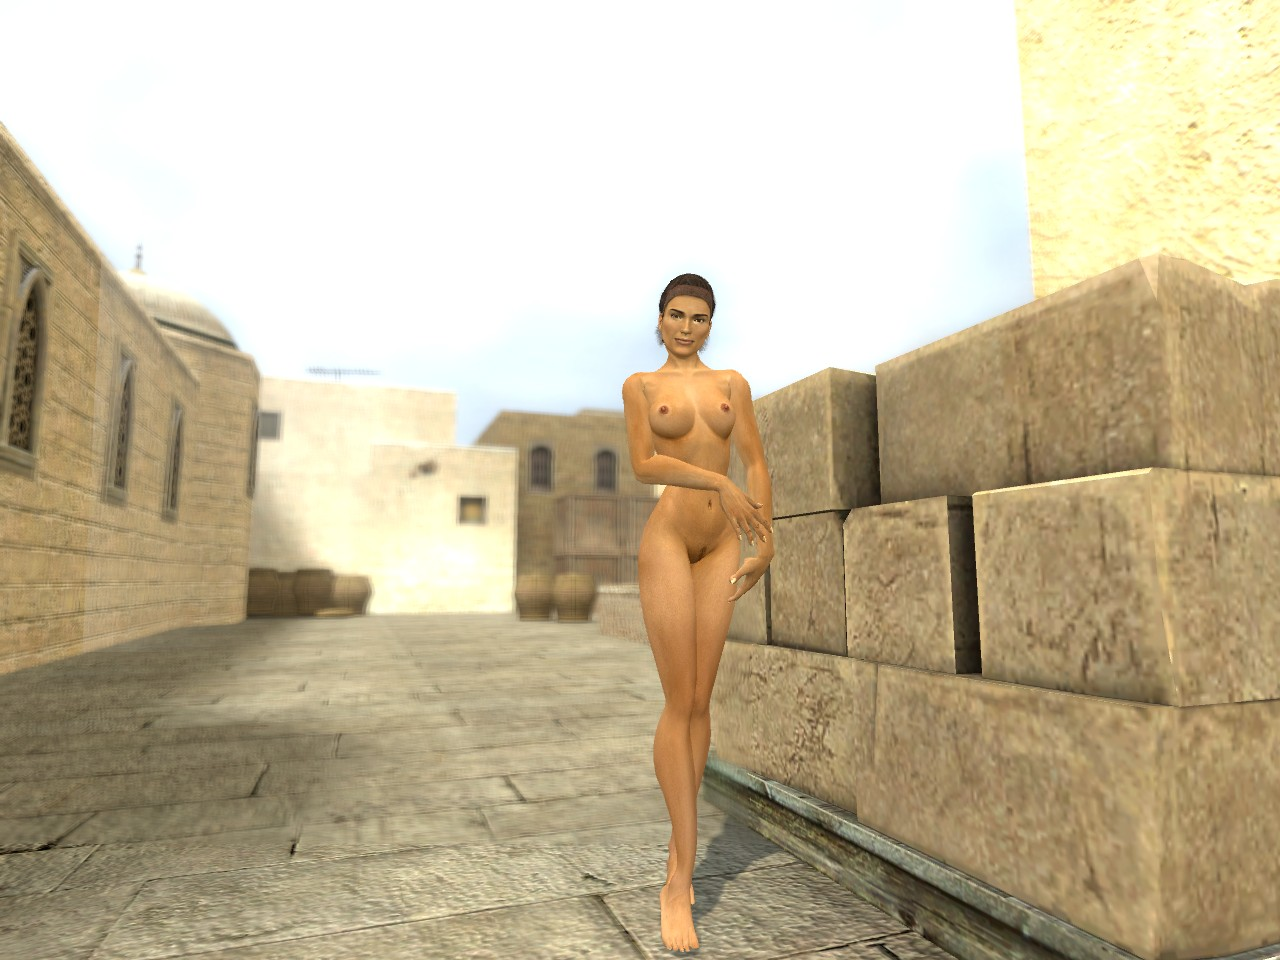 Counter strike porno hentia tube